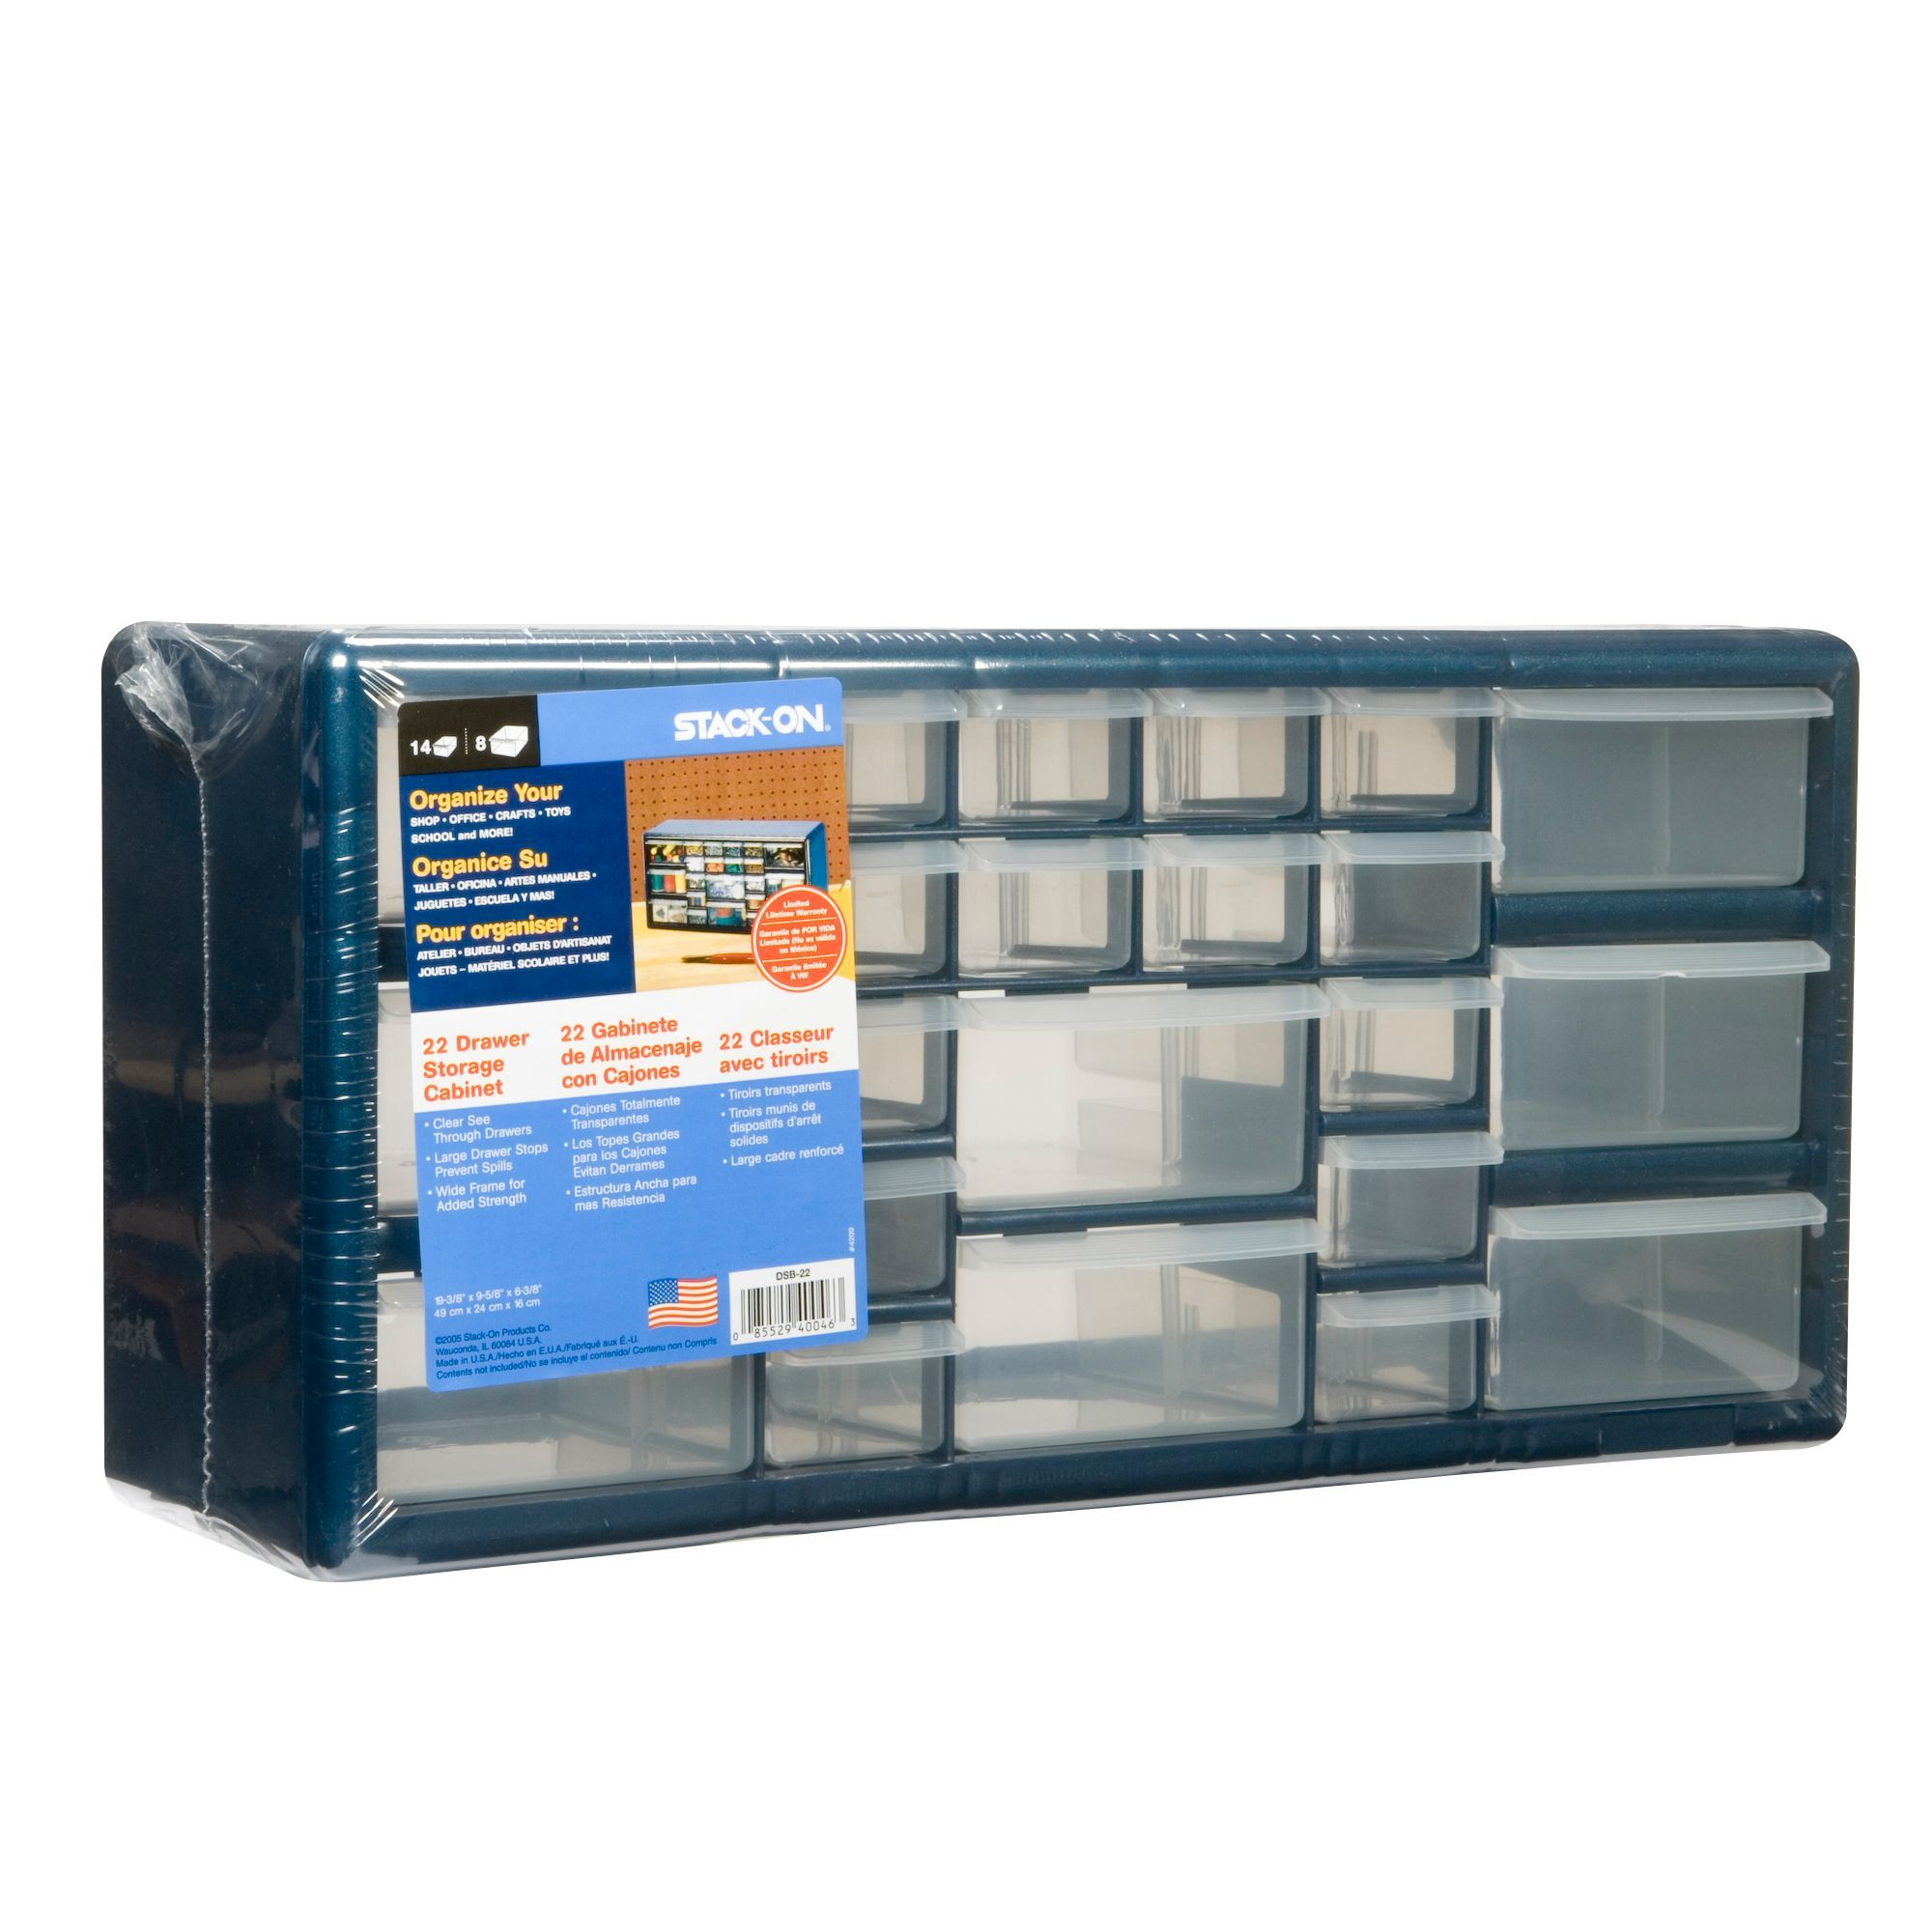 Supply Closet Organization Ideas Part - 40: Sears For 13 Dollars. Office Supply Closet Organizer - Google Search